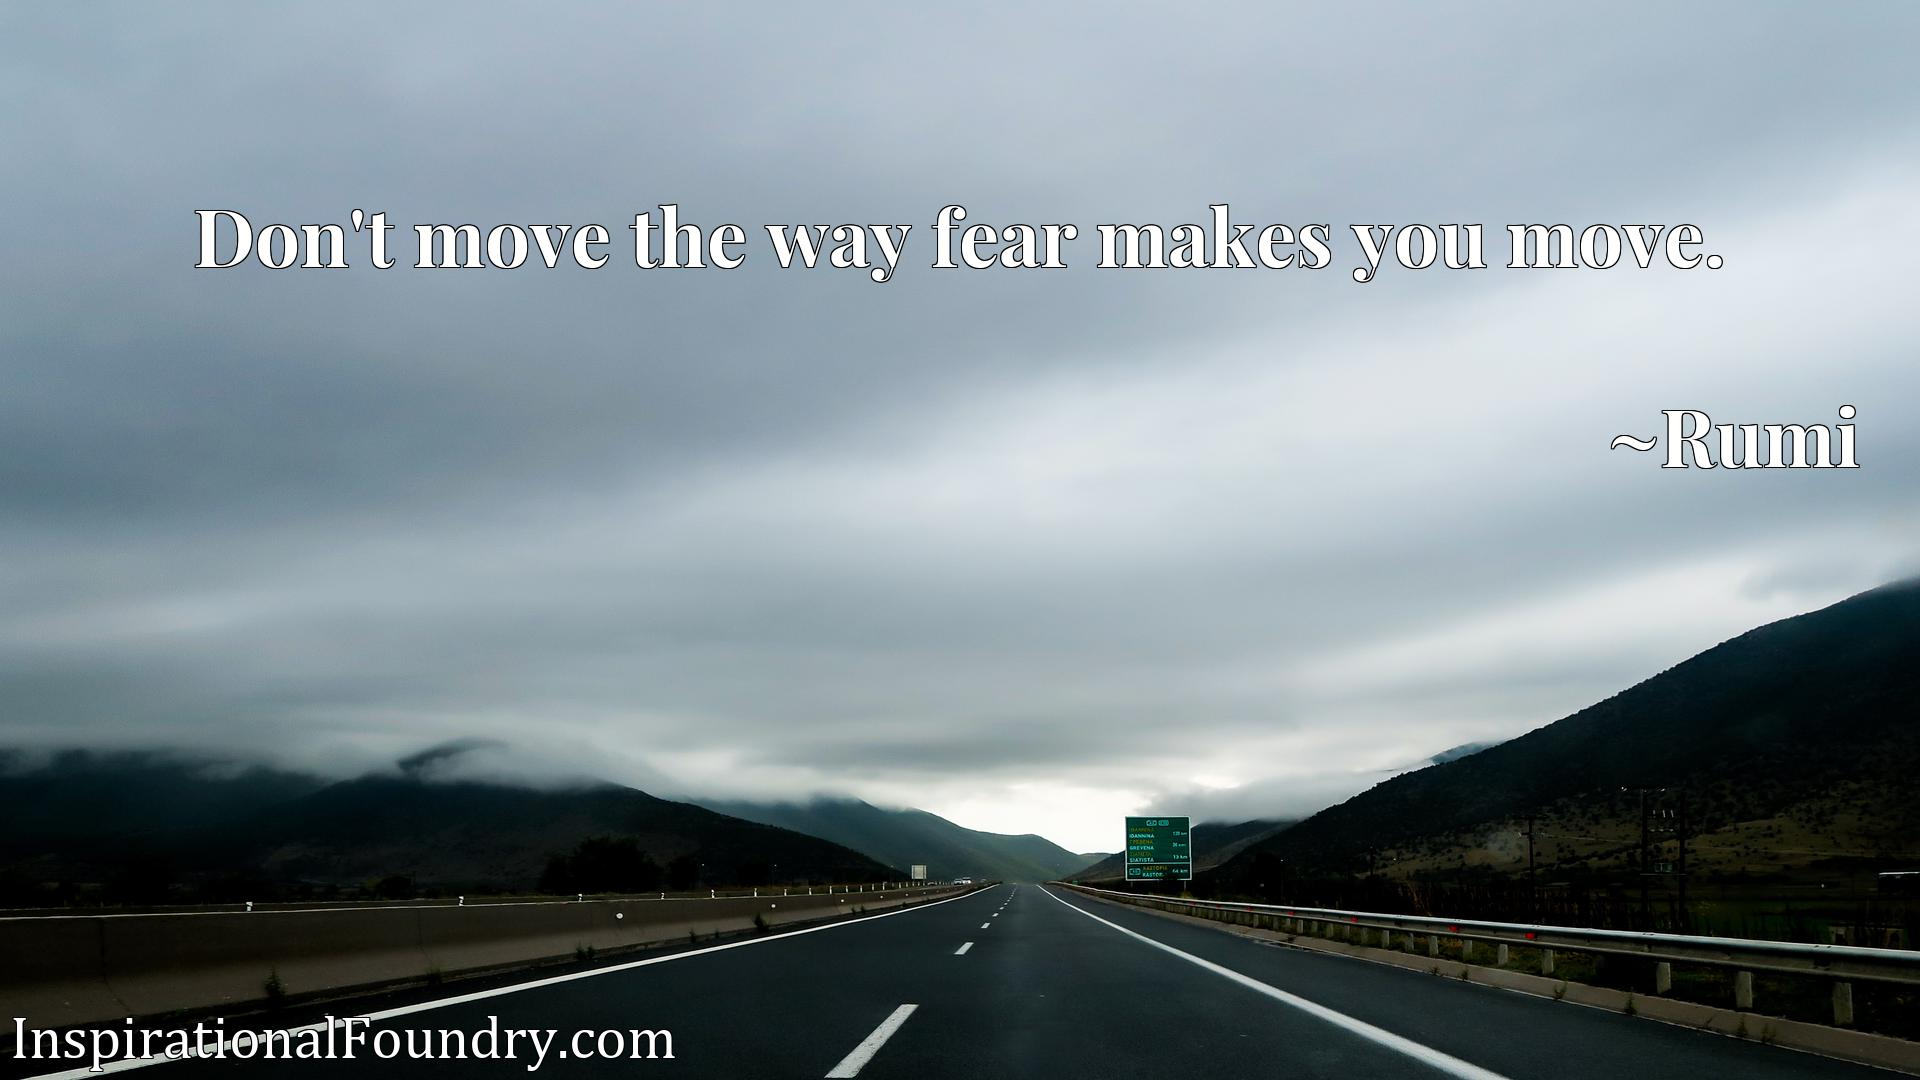 Don't move the way fear makes you move.